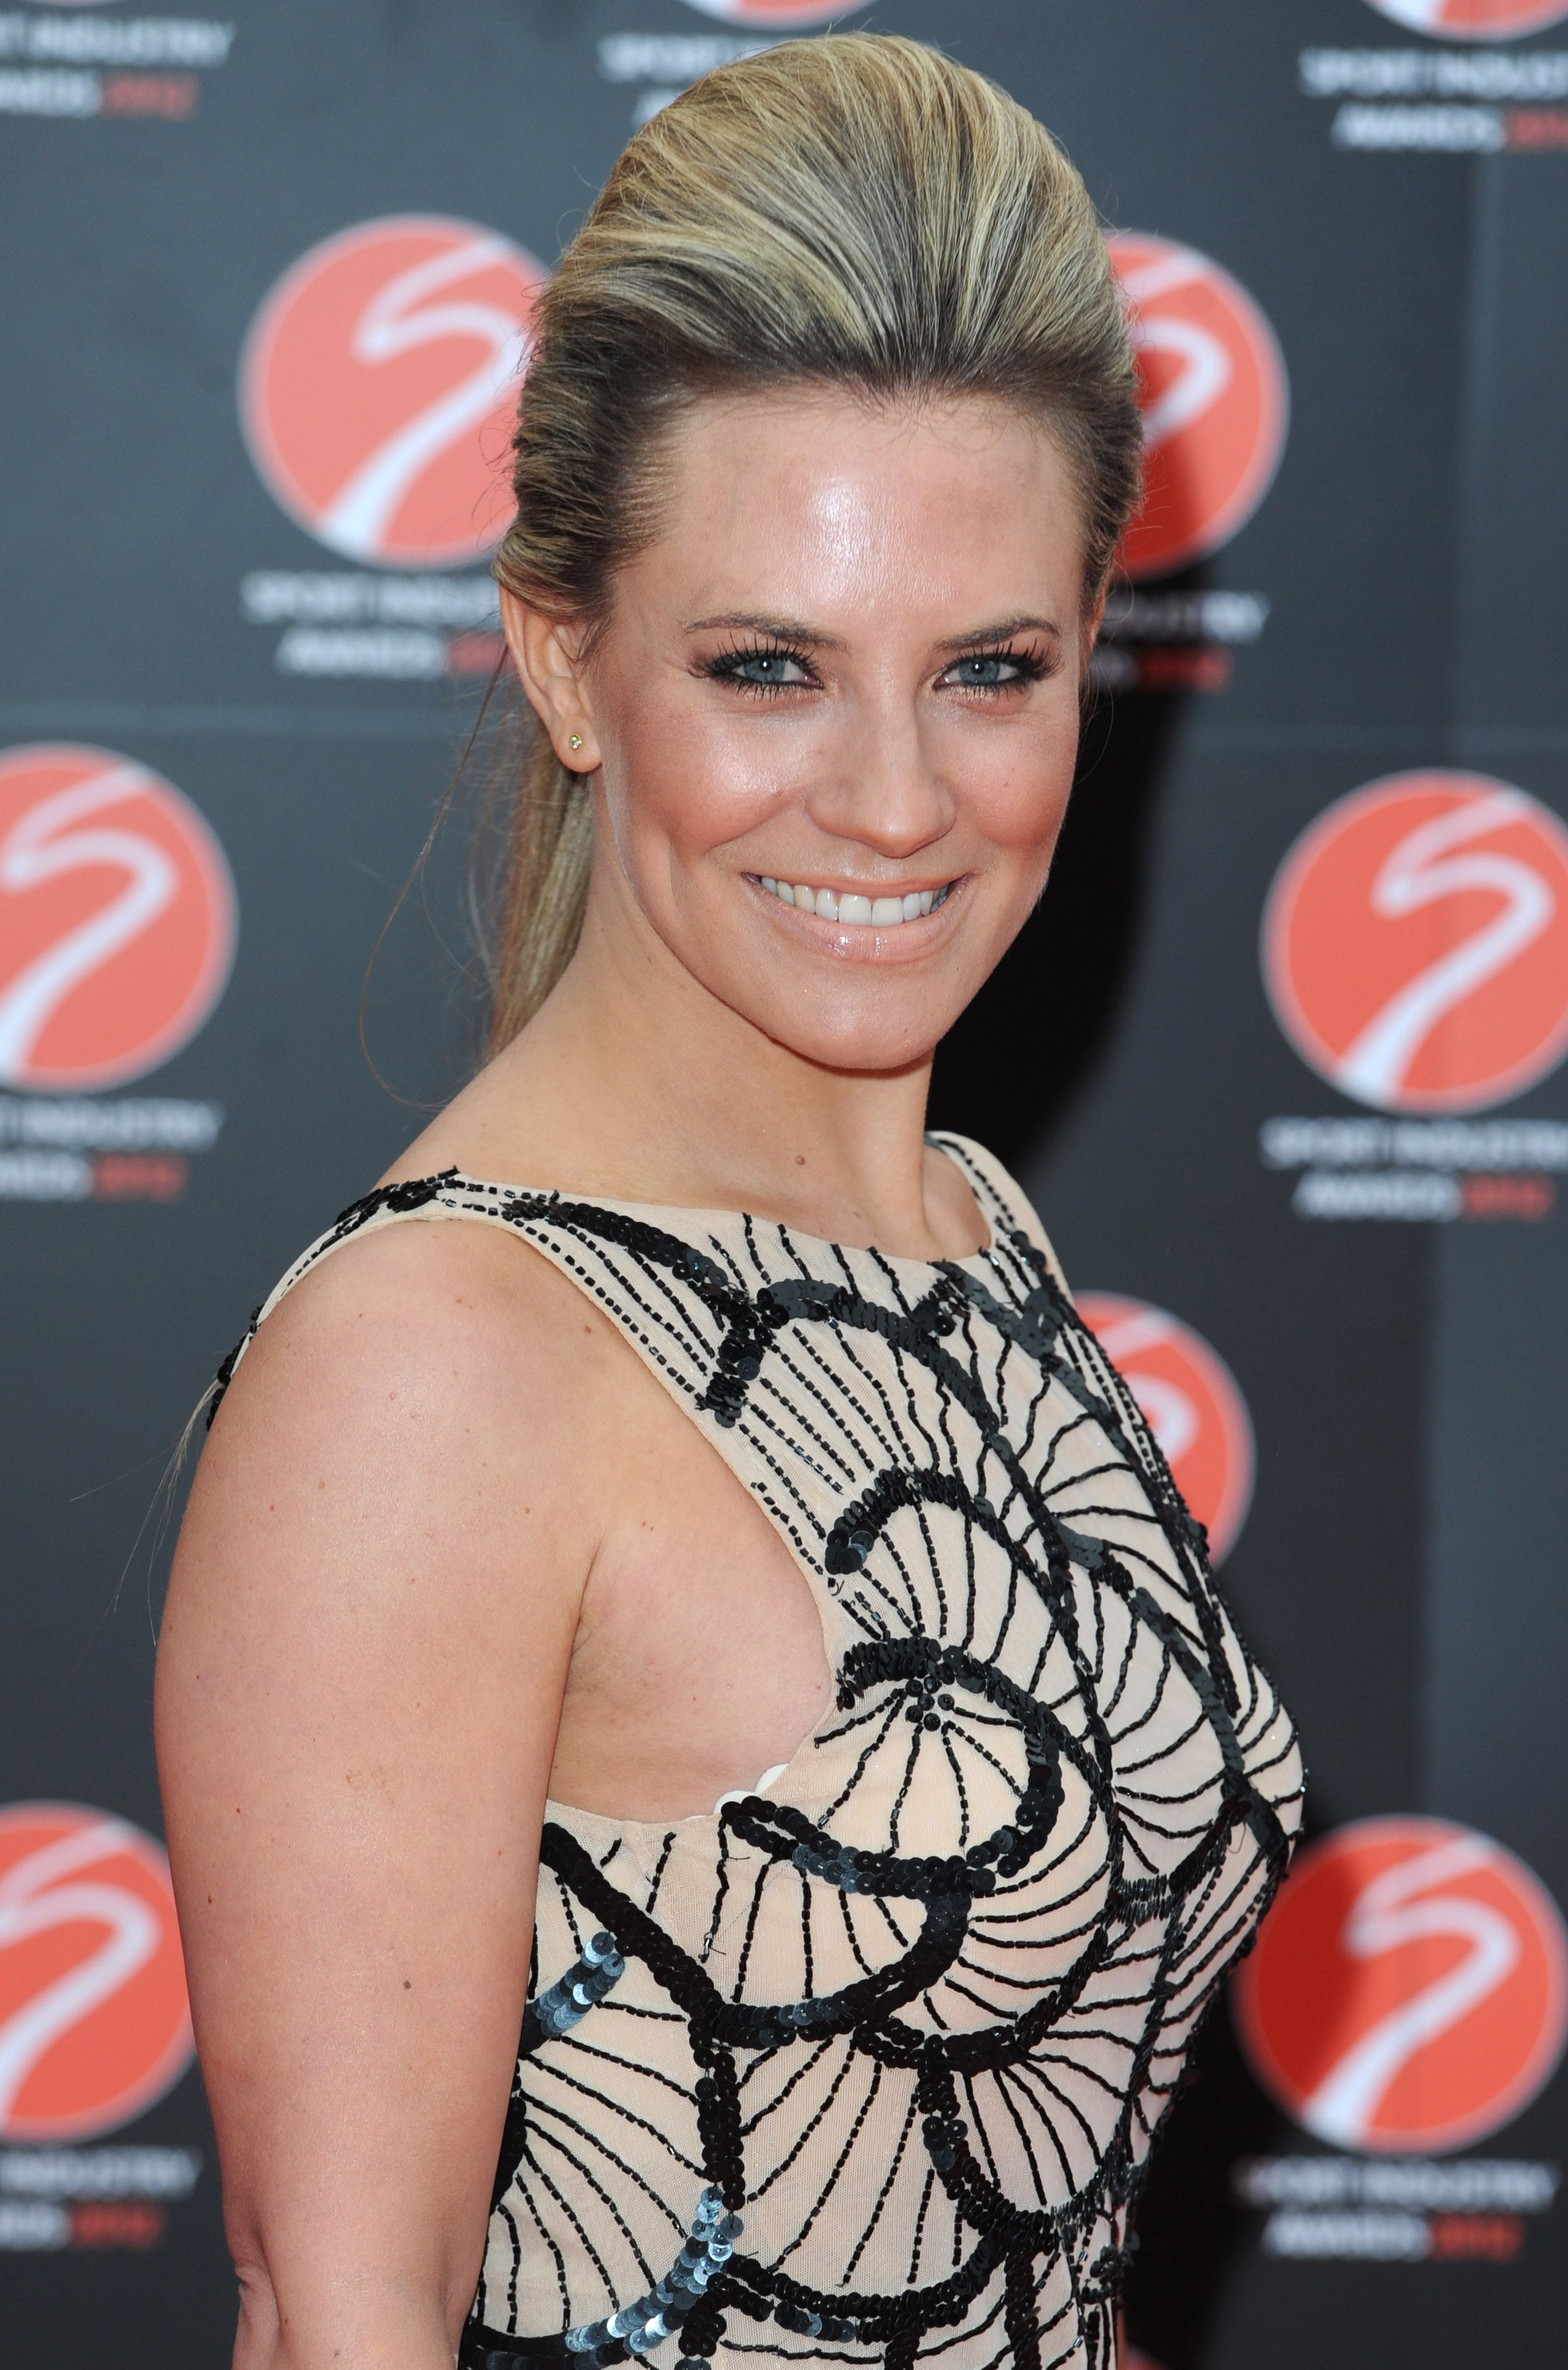 Georgie Thompson - Sports Presenter and on A League of Their Own.